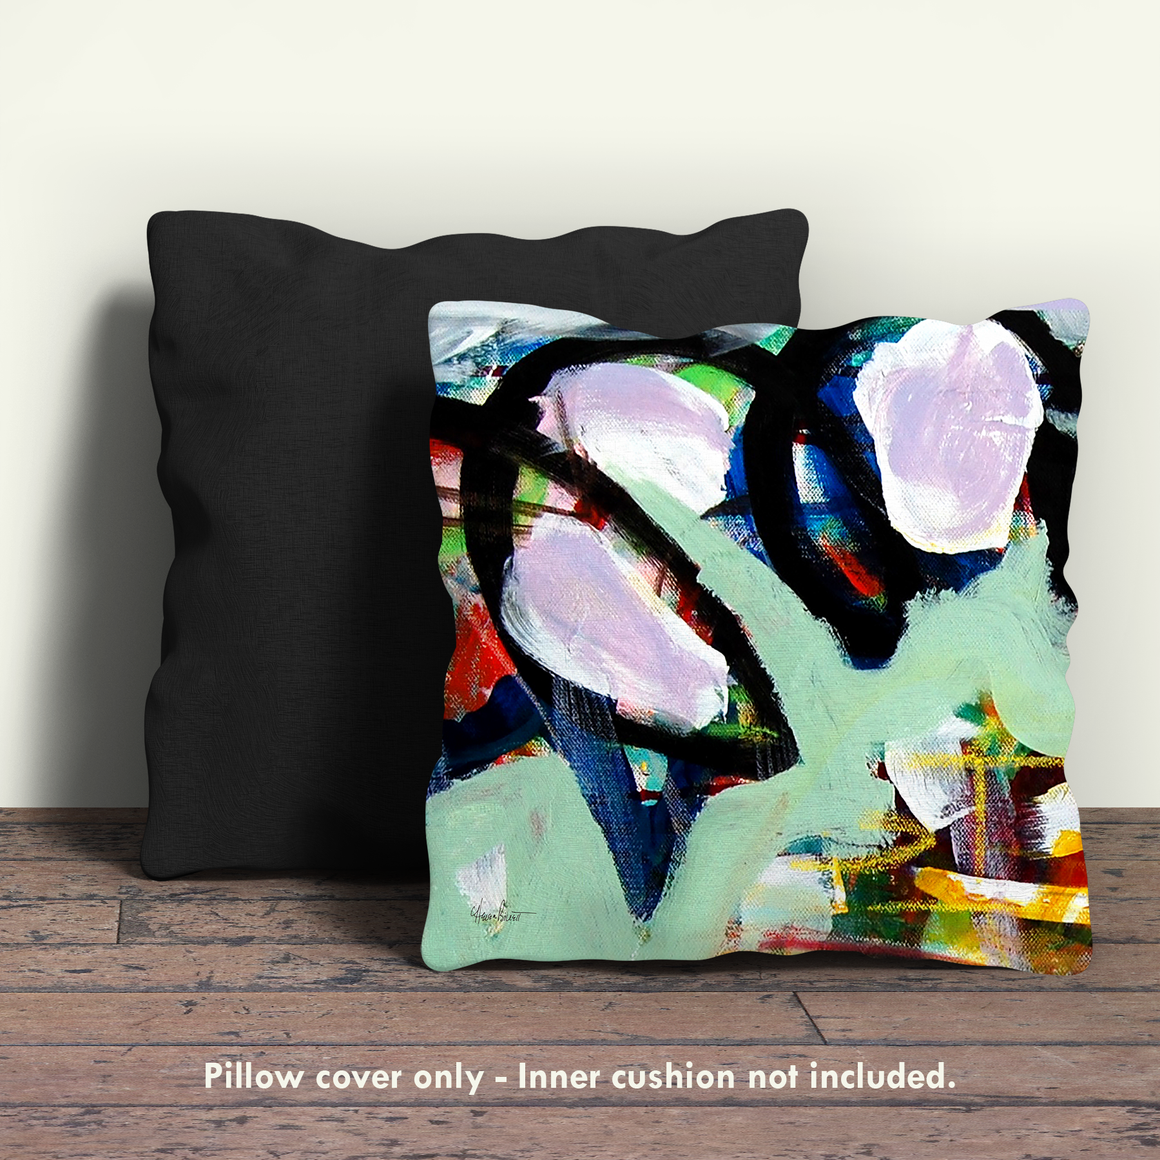 Amalfi Cliffs Pillow Cover